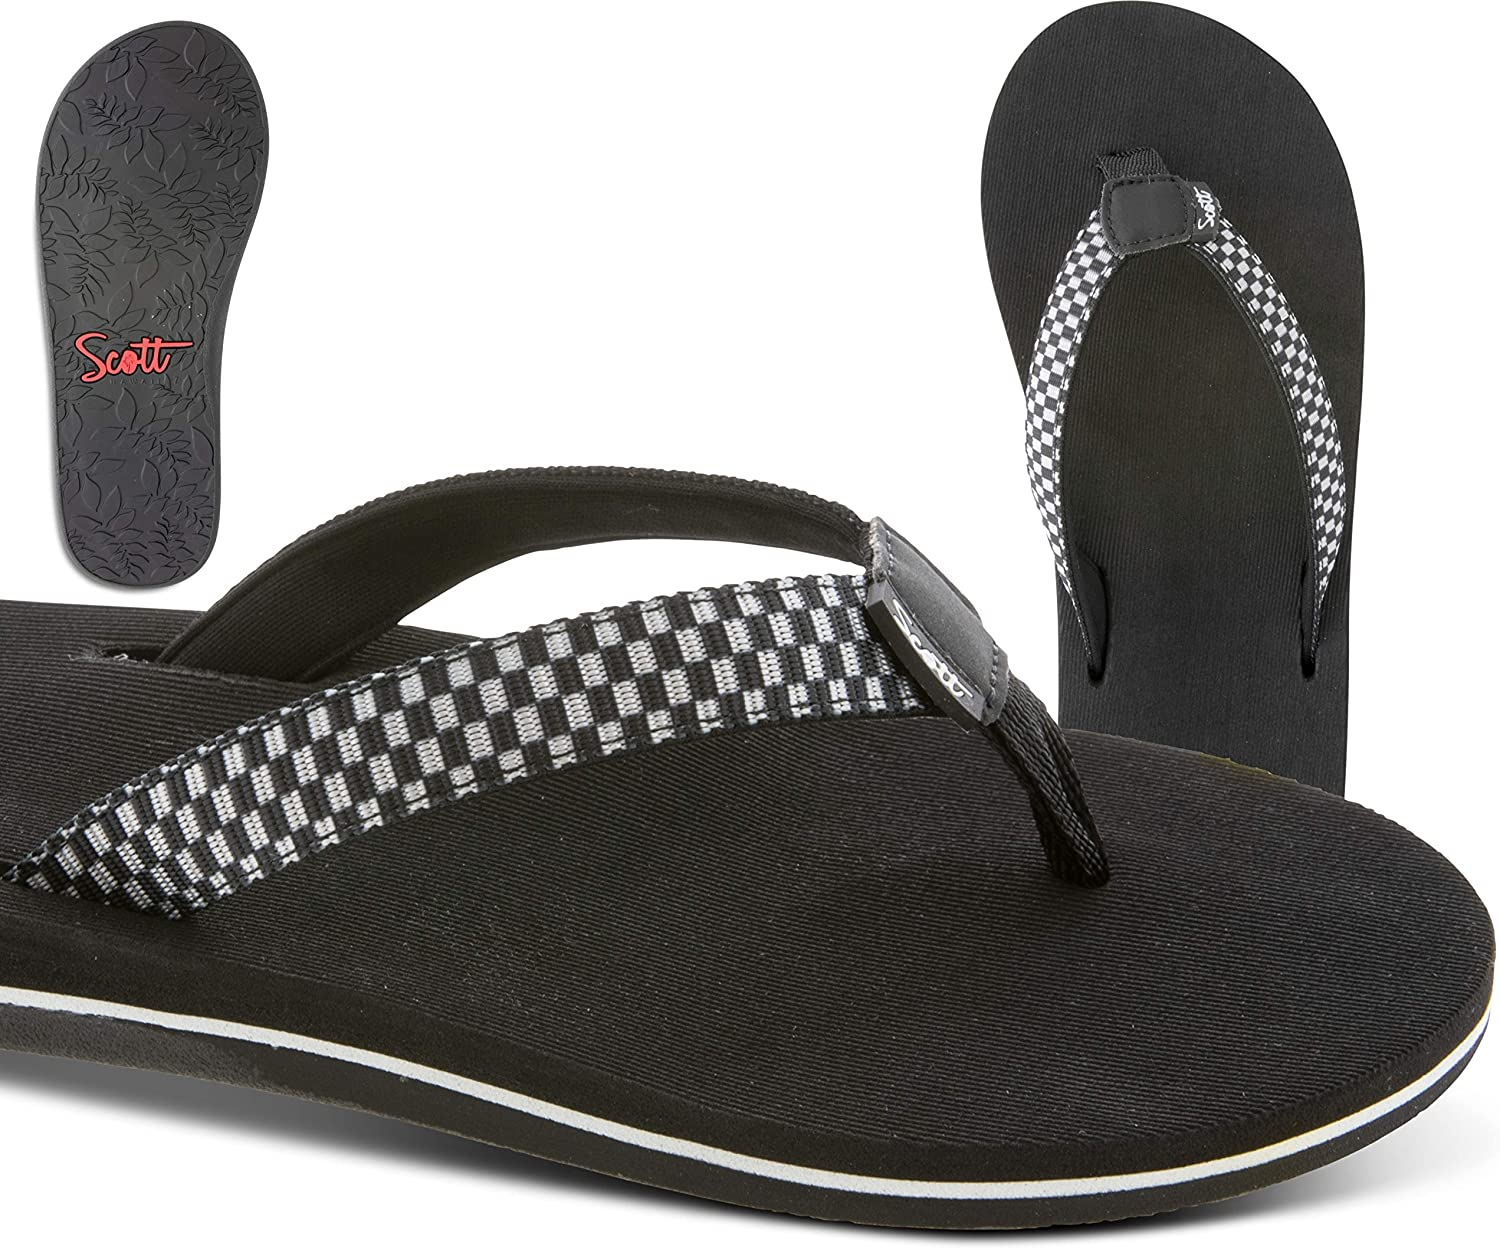 Women's Scott Checkered Olino Sandal with Combed Cushioned Footbed and Heel Cup